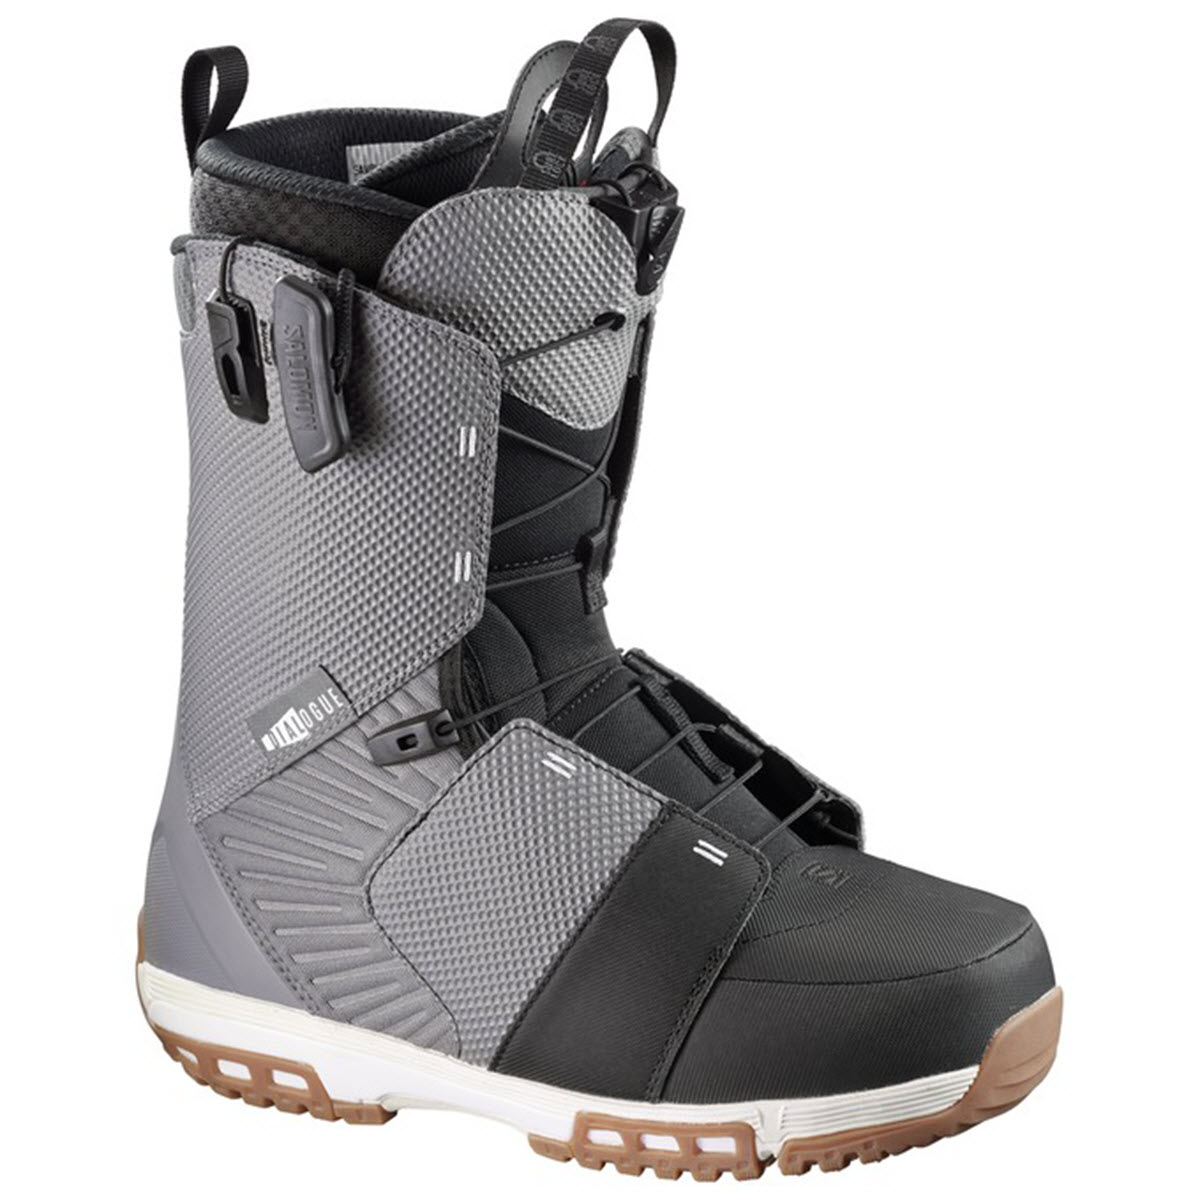 Climbing & Hiking Boots|Snowboard Boots Salomon Dialogue Speed Lace Snowboard Boots 2017 Detroit Black White UK 11.5